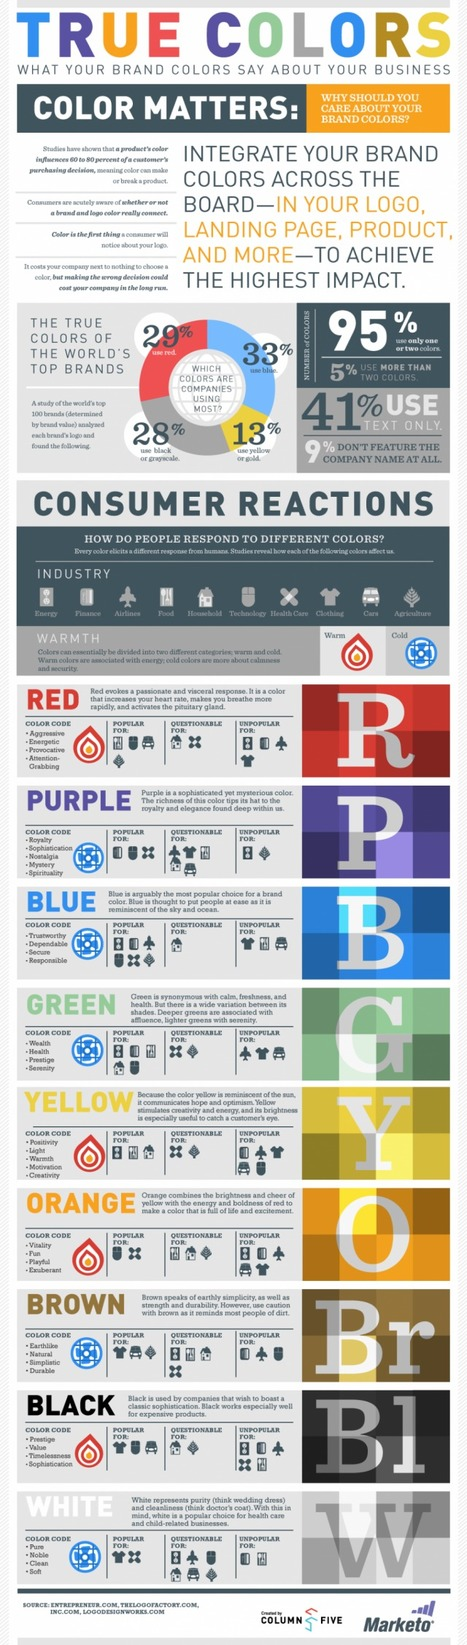 How Your Brand Colors Impact Your Audience | Digital and Graphic Design Tips, Tools and Tricks in Higher Education | Scoop.it